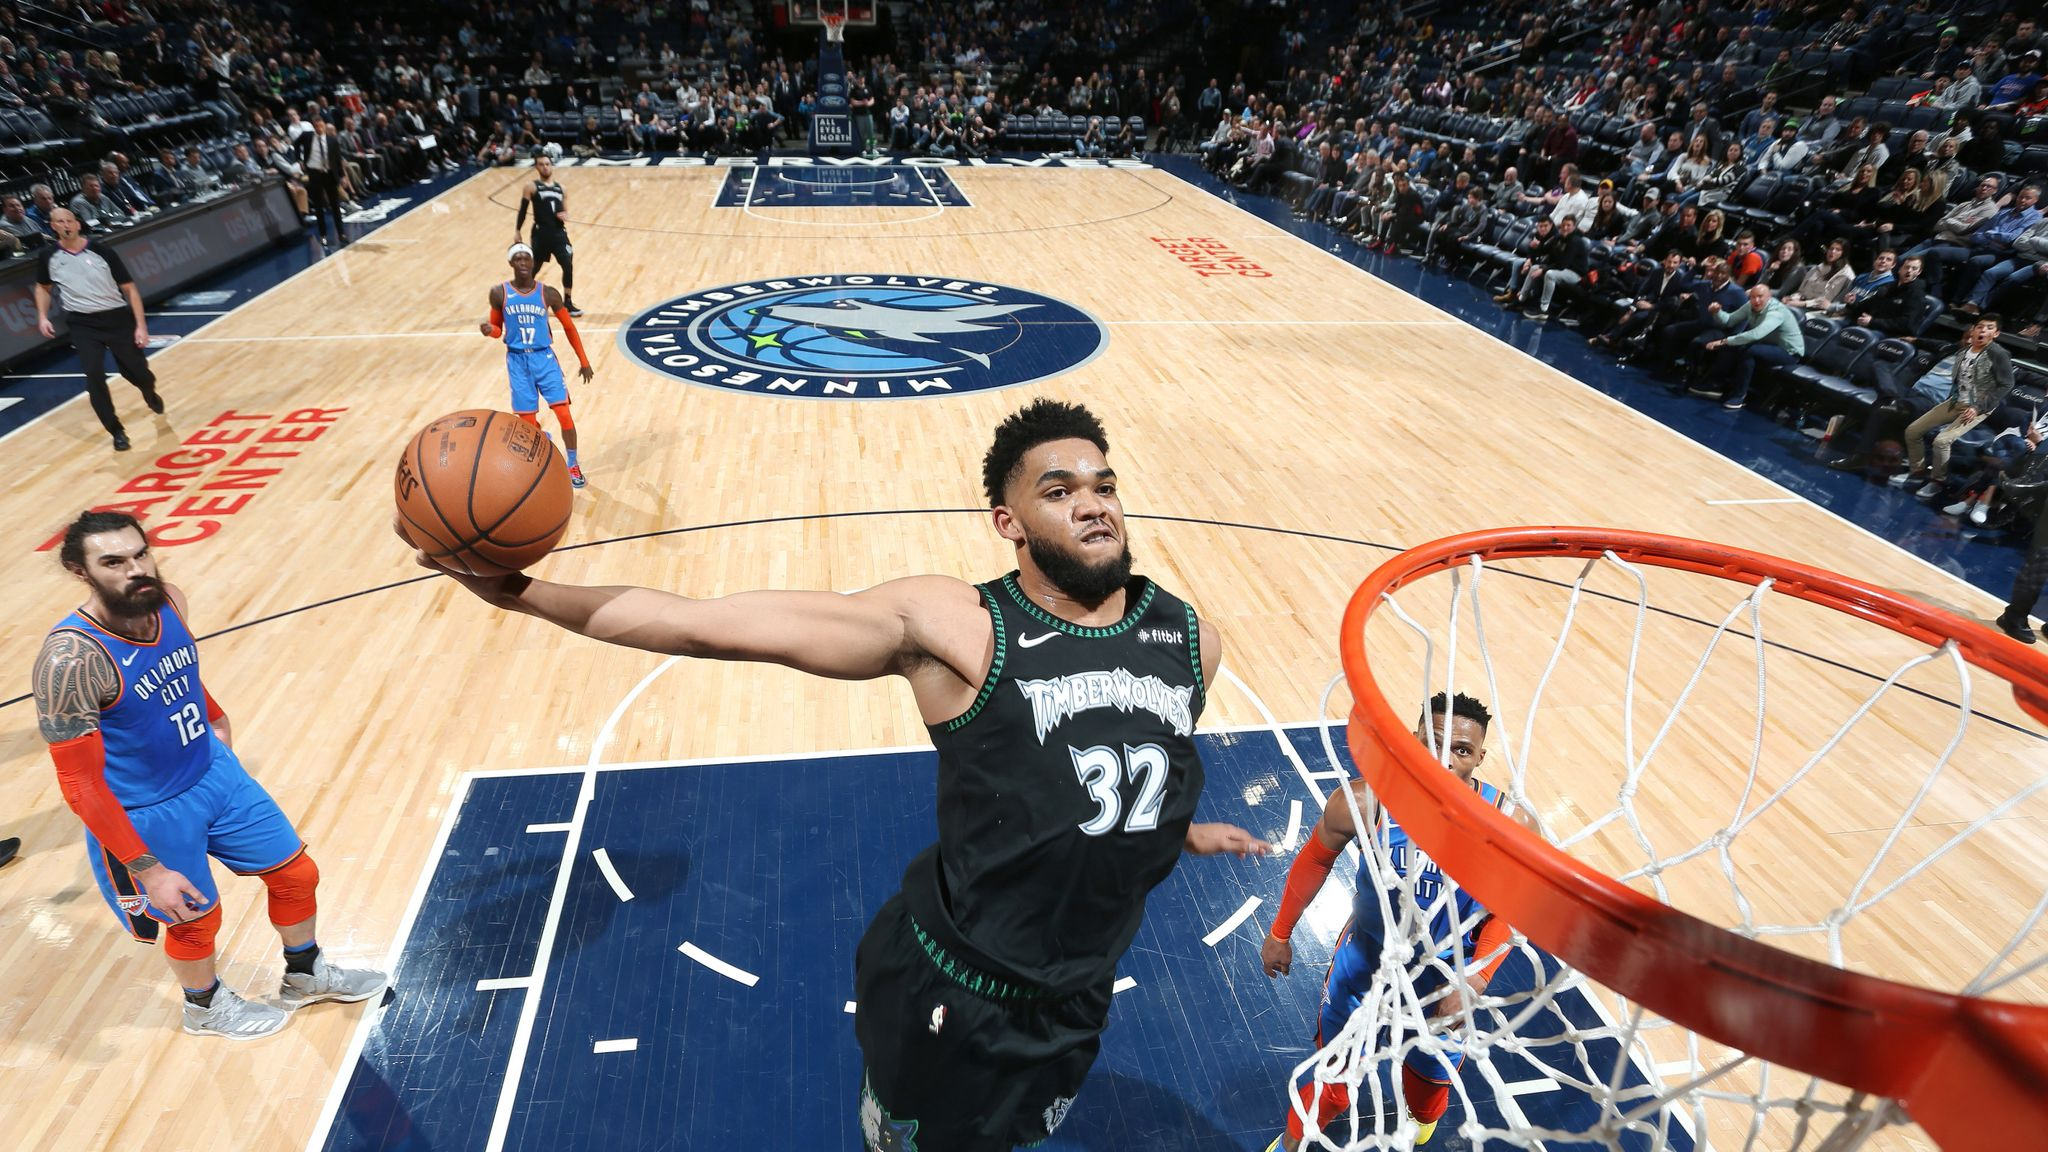 Karl Anthony Towns Throws Down Huge Dunk As Minnesota Timberwolves